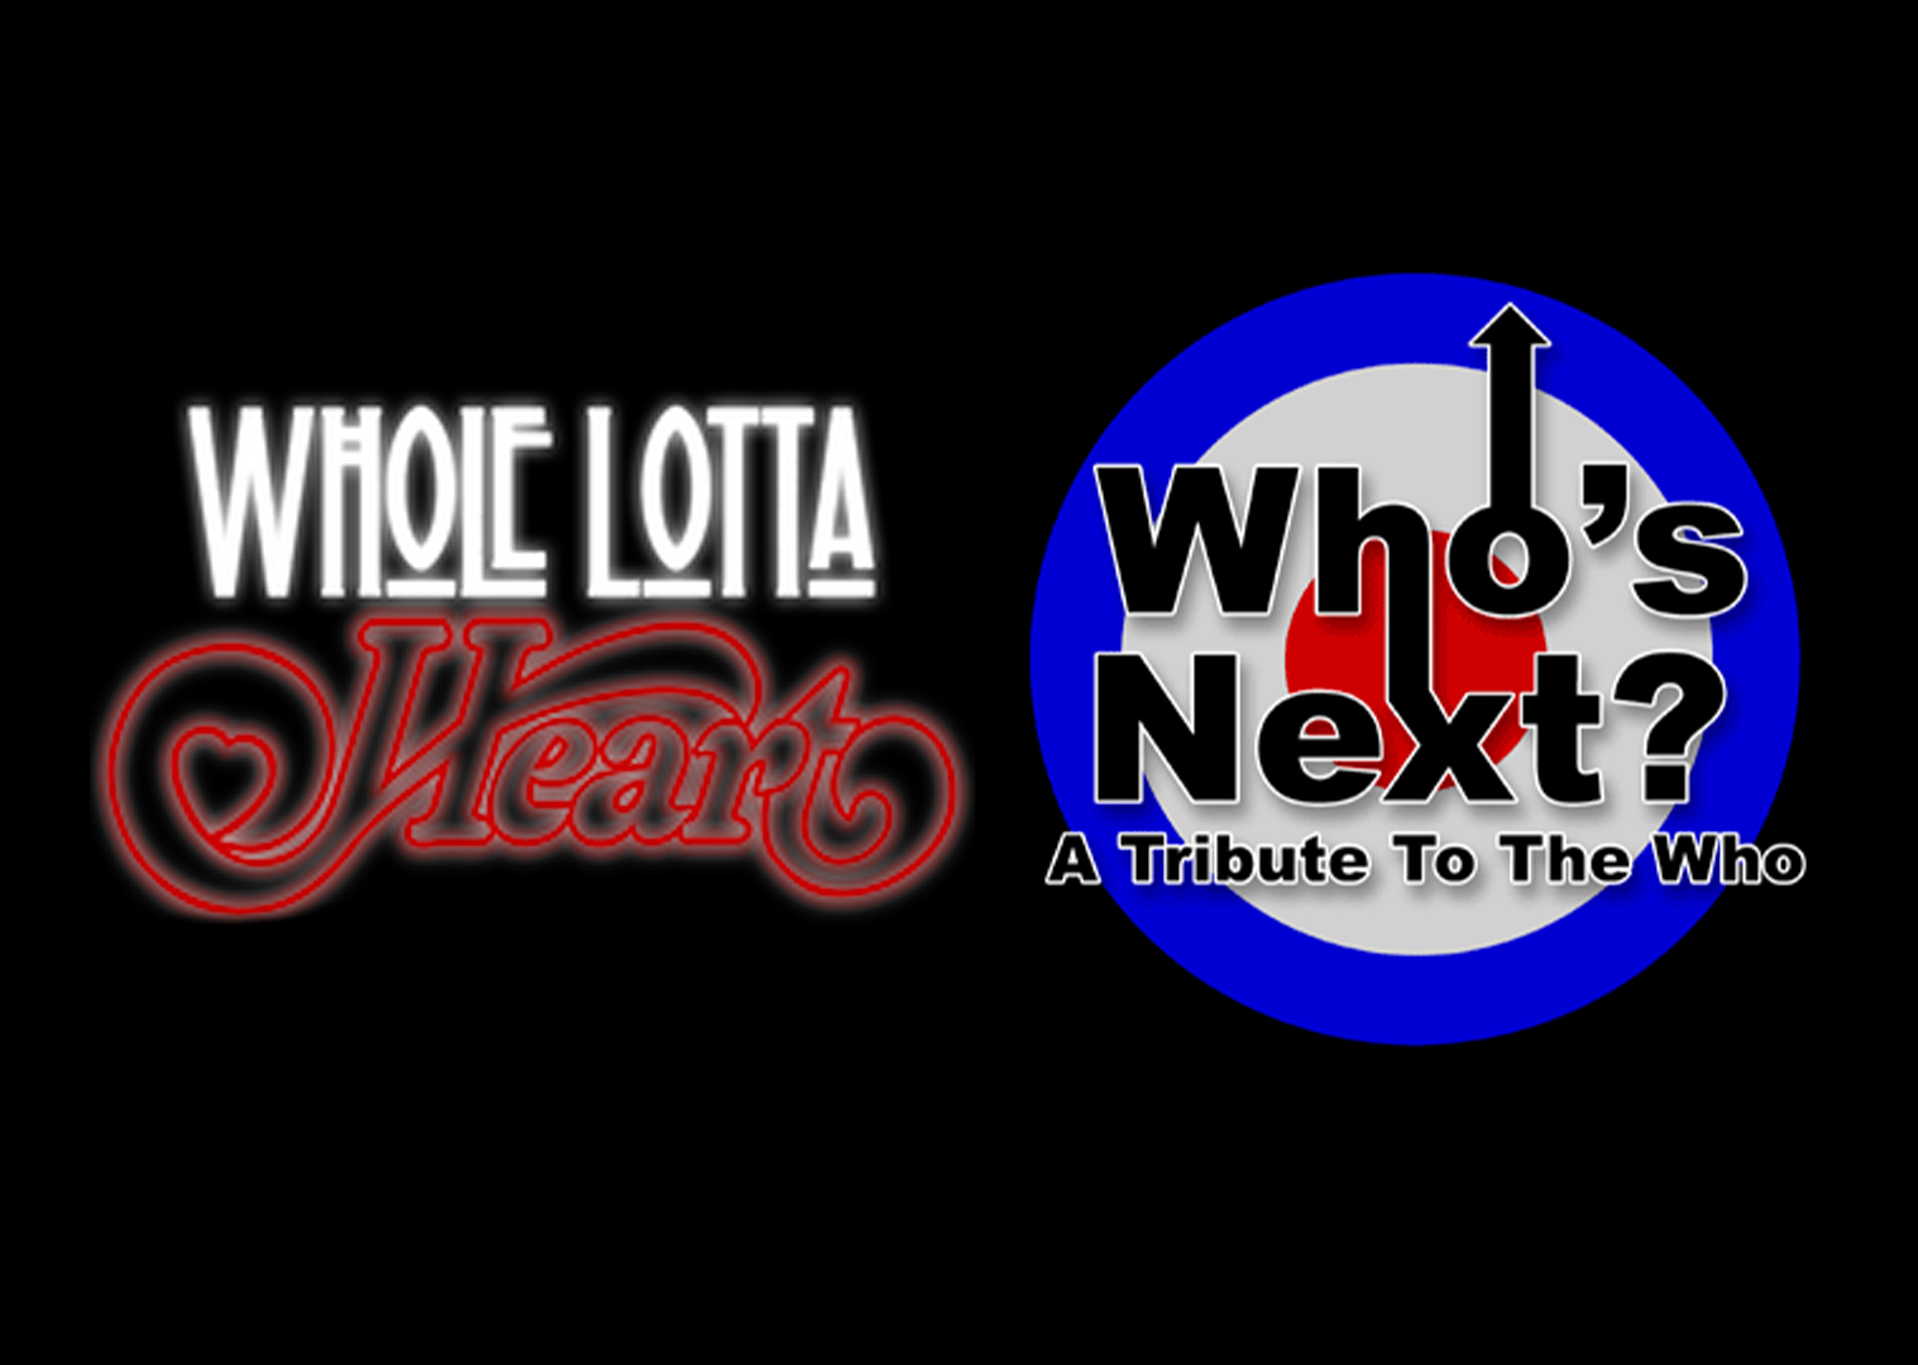 Whole Lotta Heart + Who's Next thumb